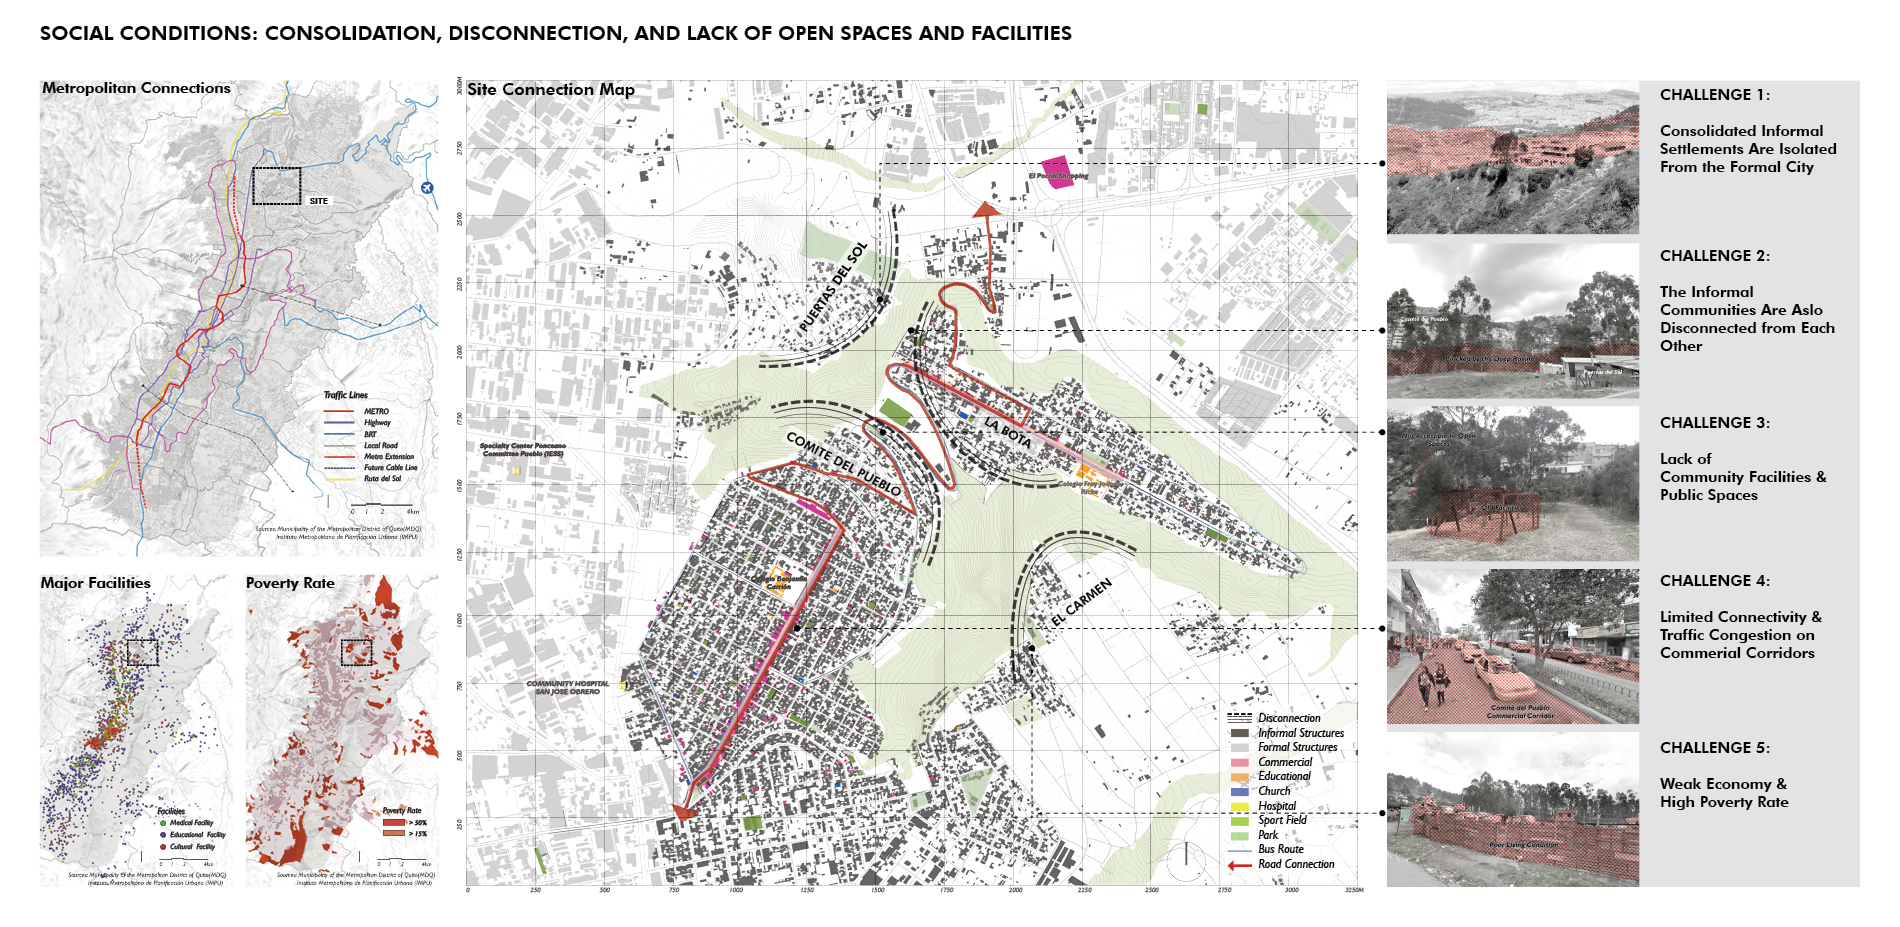 Social Conditions: Consolidation, Disconnection, and Lack of Open Spaces and Facilities